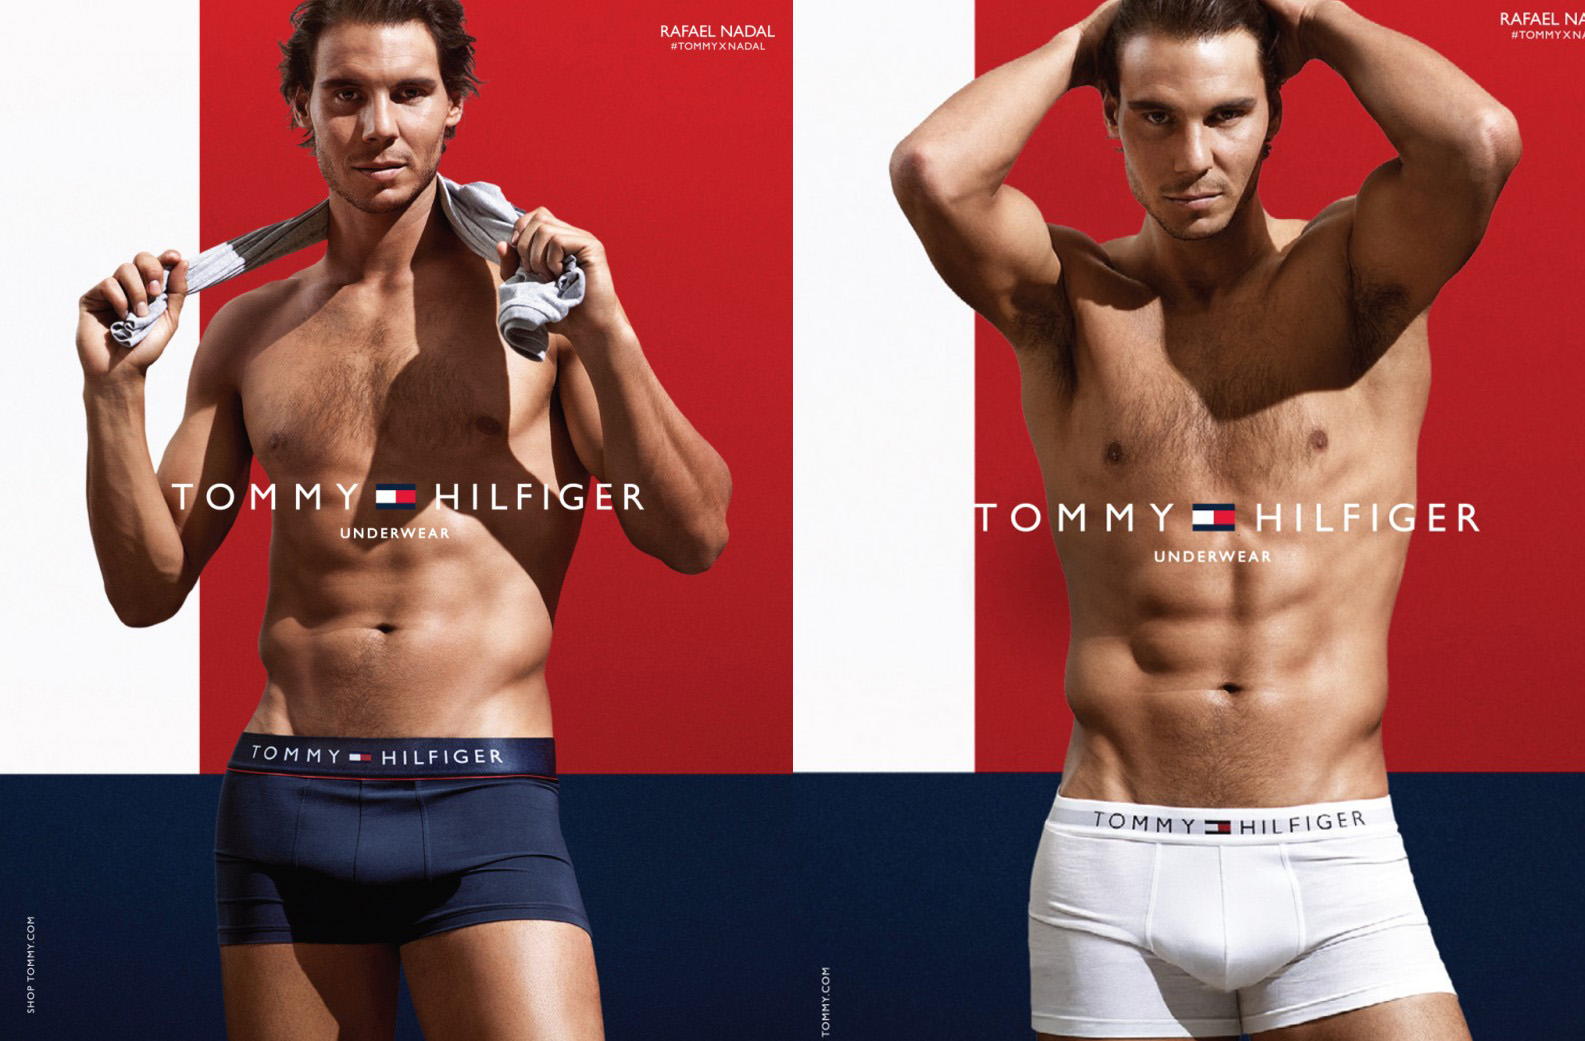 Eniwhere Fashion - News on Fashion - Rafa Nadal and Tommy Hilfiger